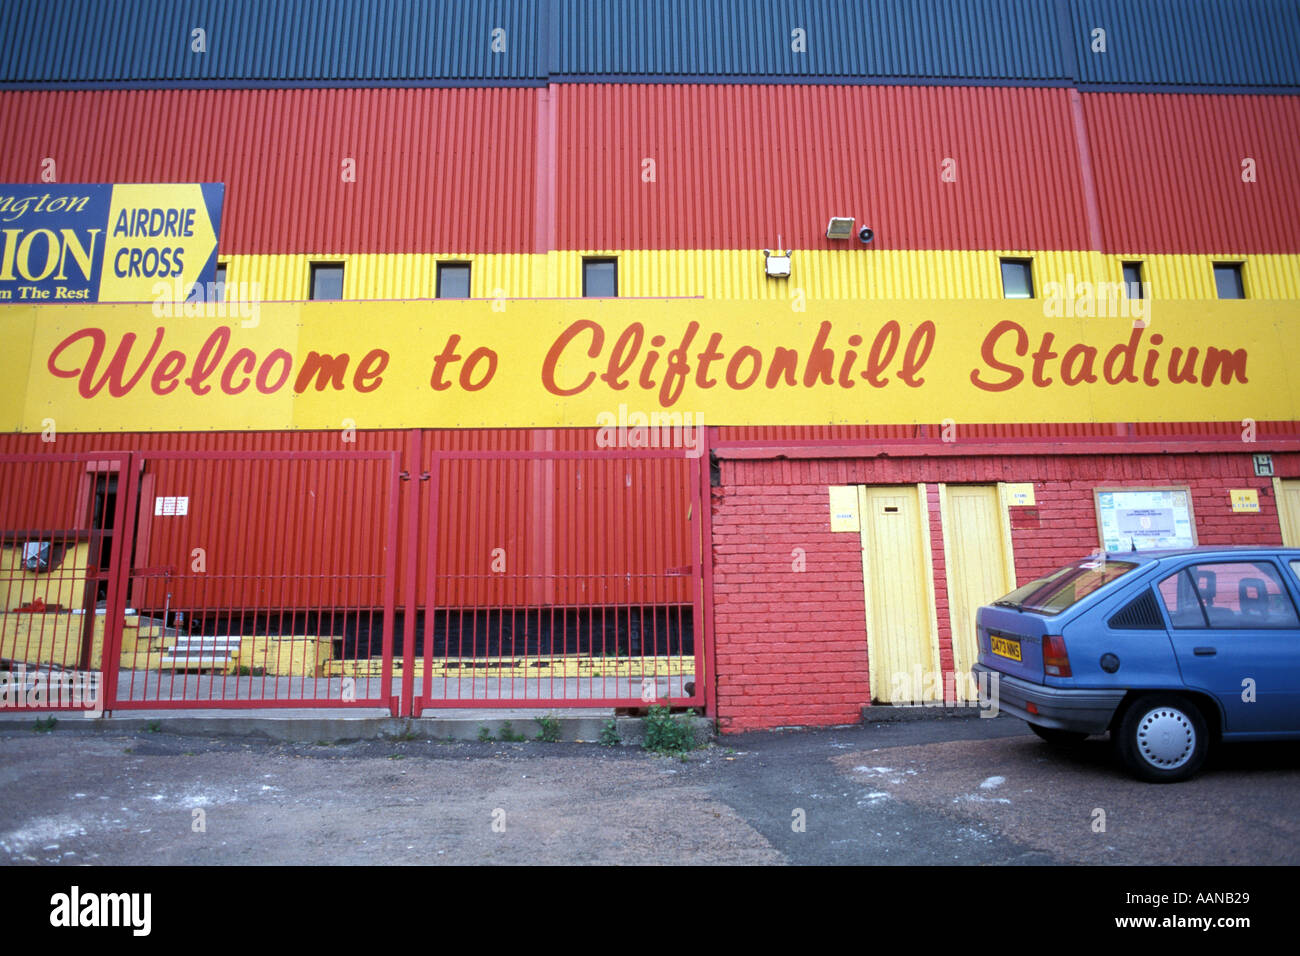 albion rovers cowdenbeath sofascore lee industries 4 cushion sofa 1296 44 stock photos and images